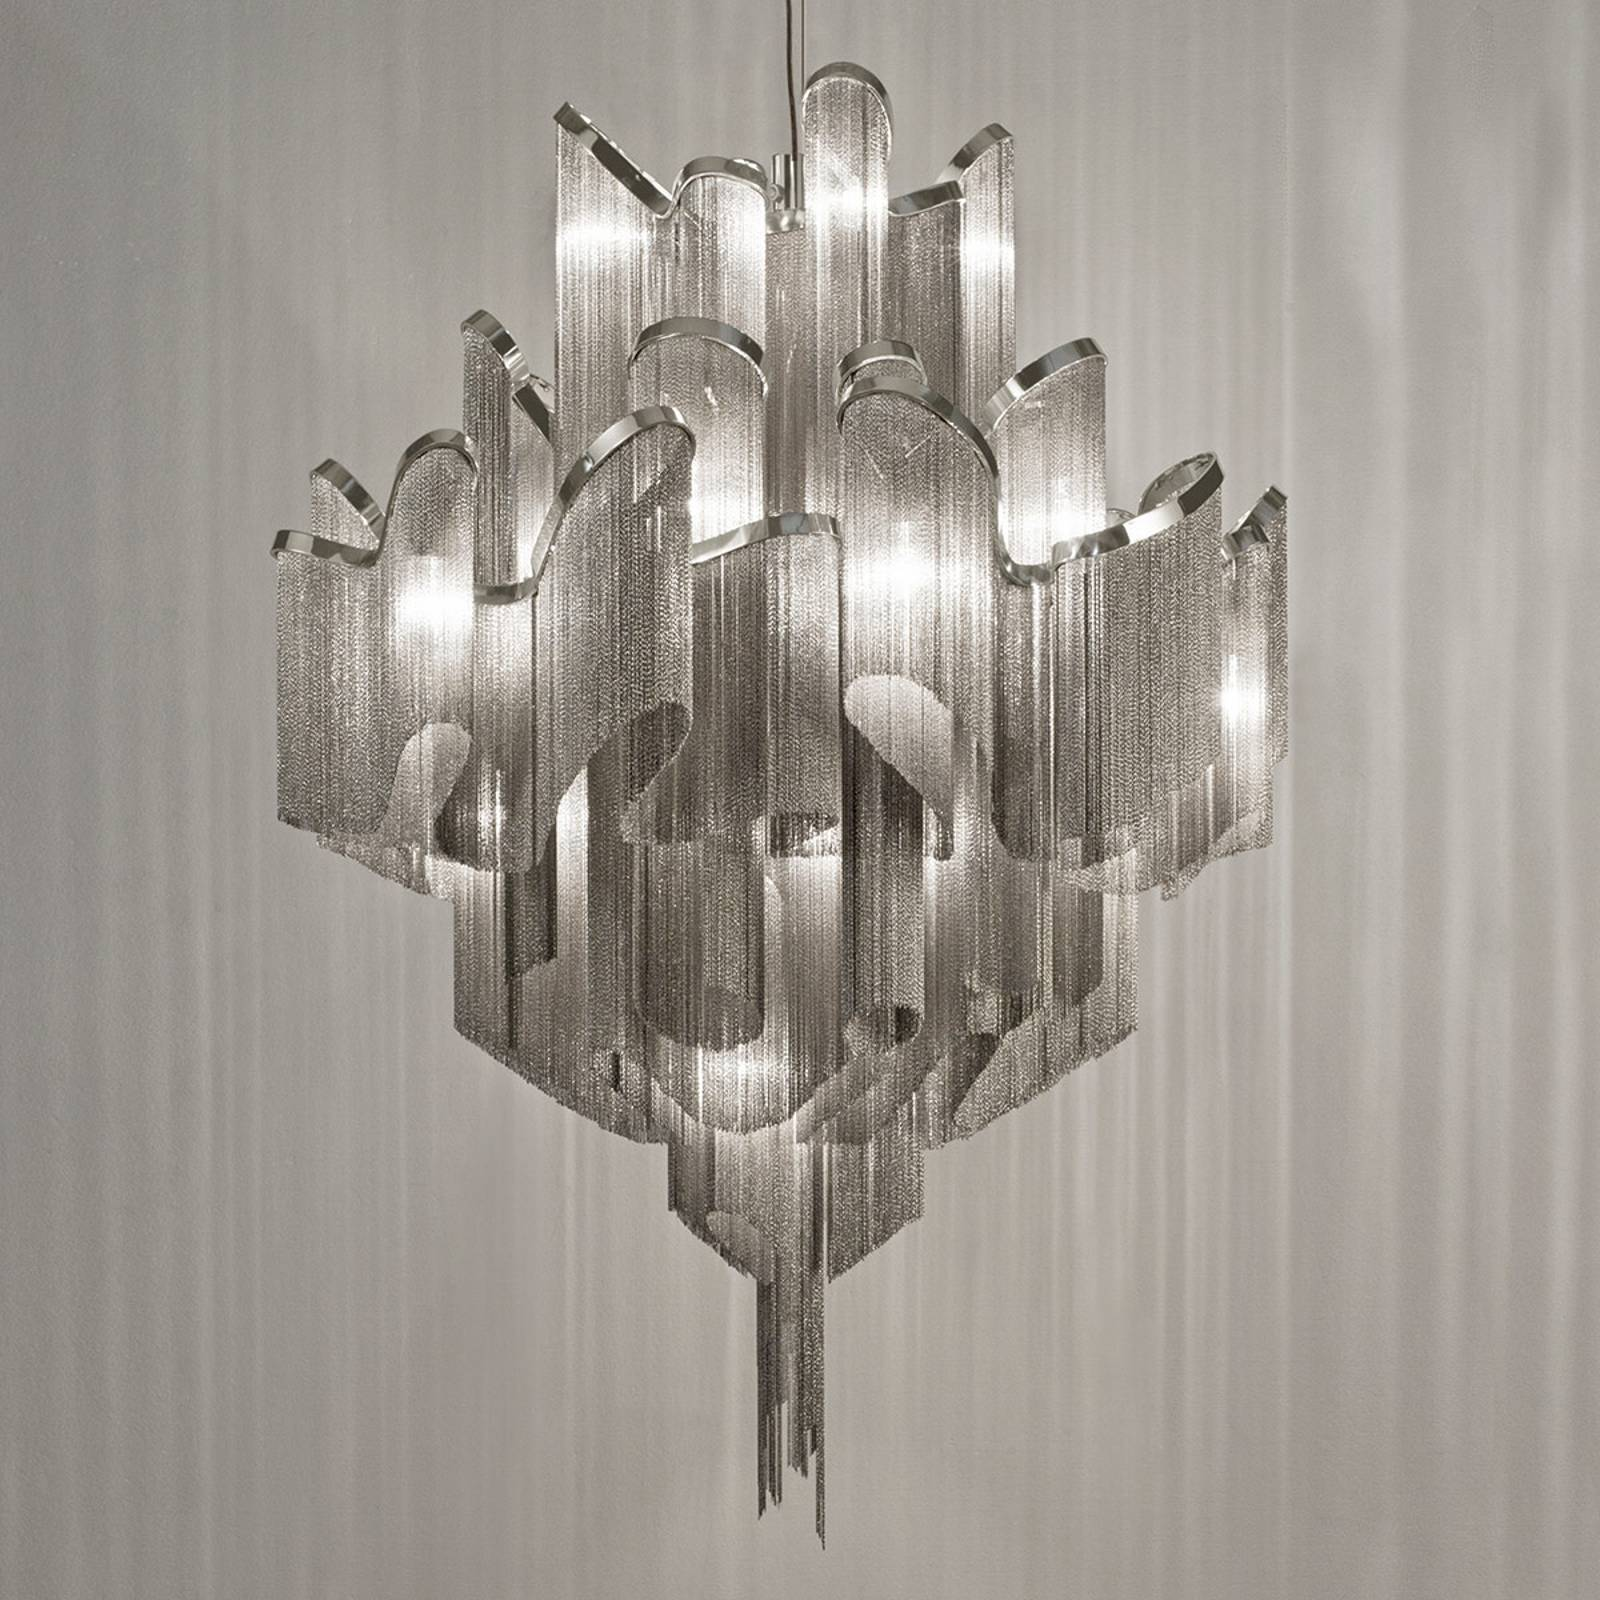 Stream - exclusive hanging light, 110 cm from TERZANI